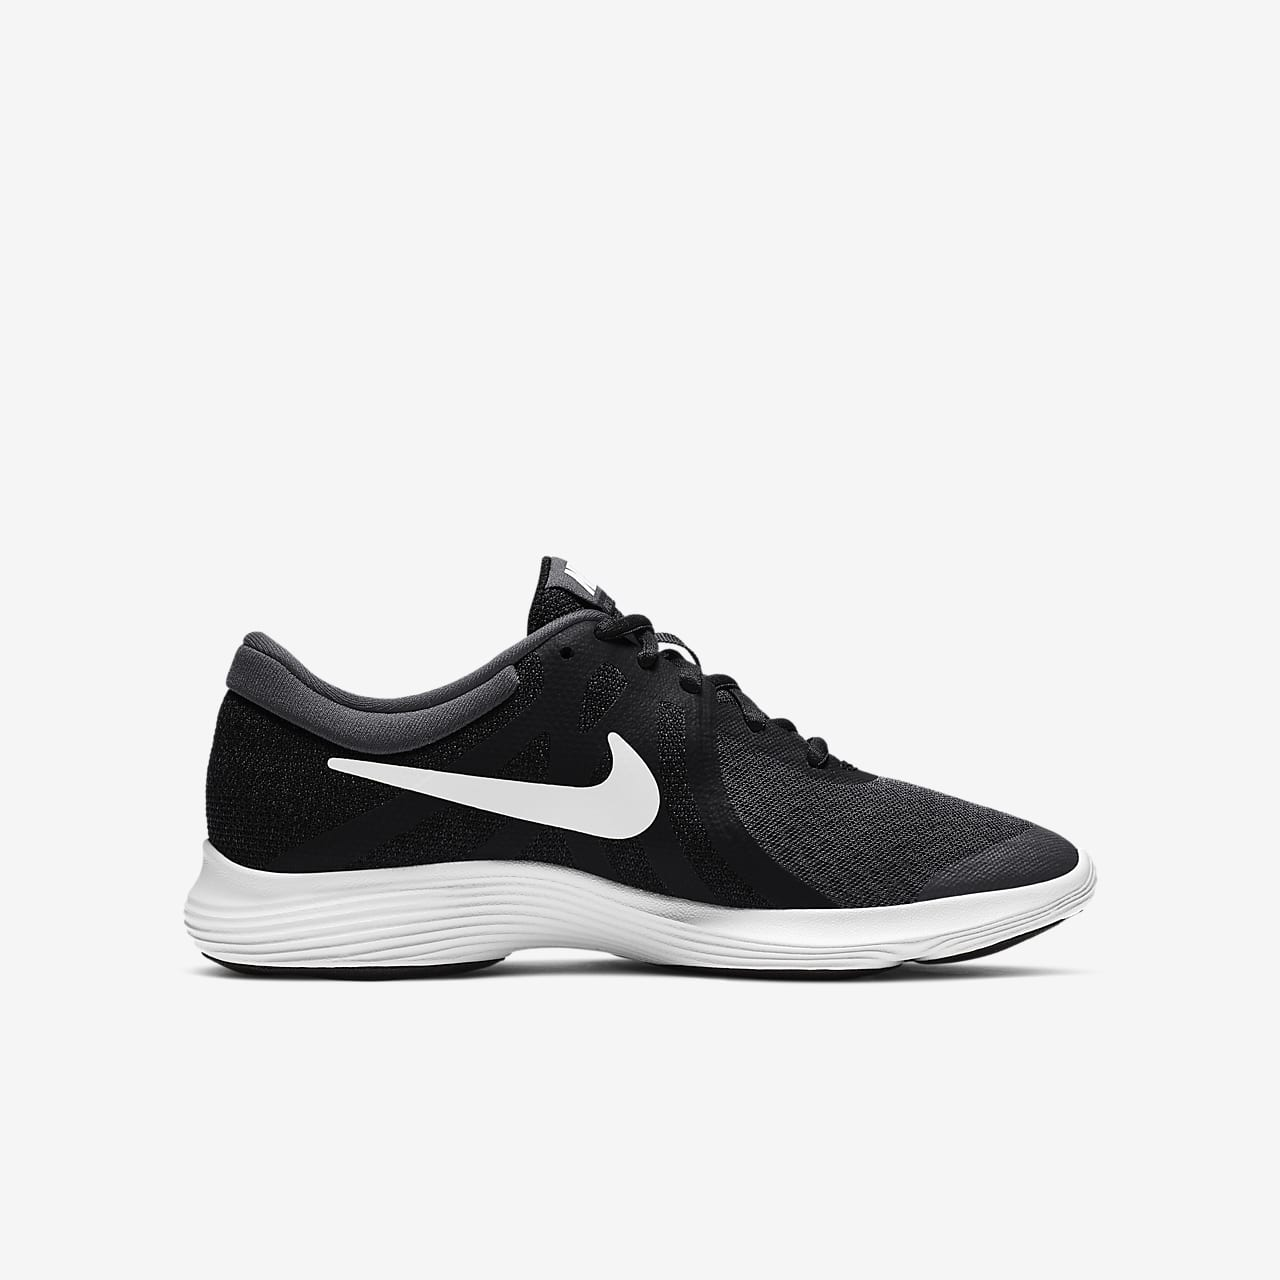 0ce9cef0f4eee Nike Revolution 4 Older Kids  Running Shoe. Nike.com GB